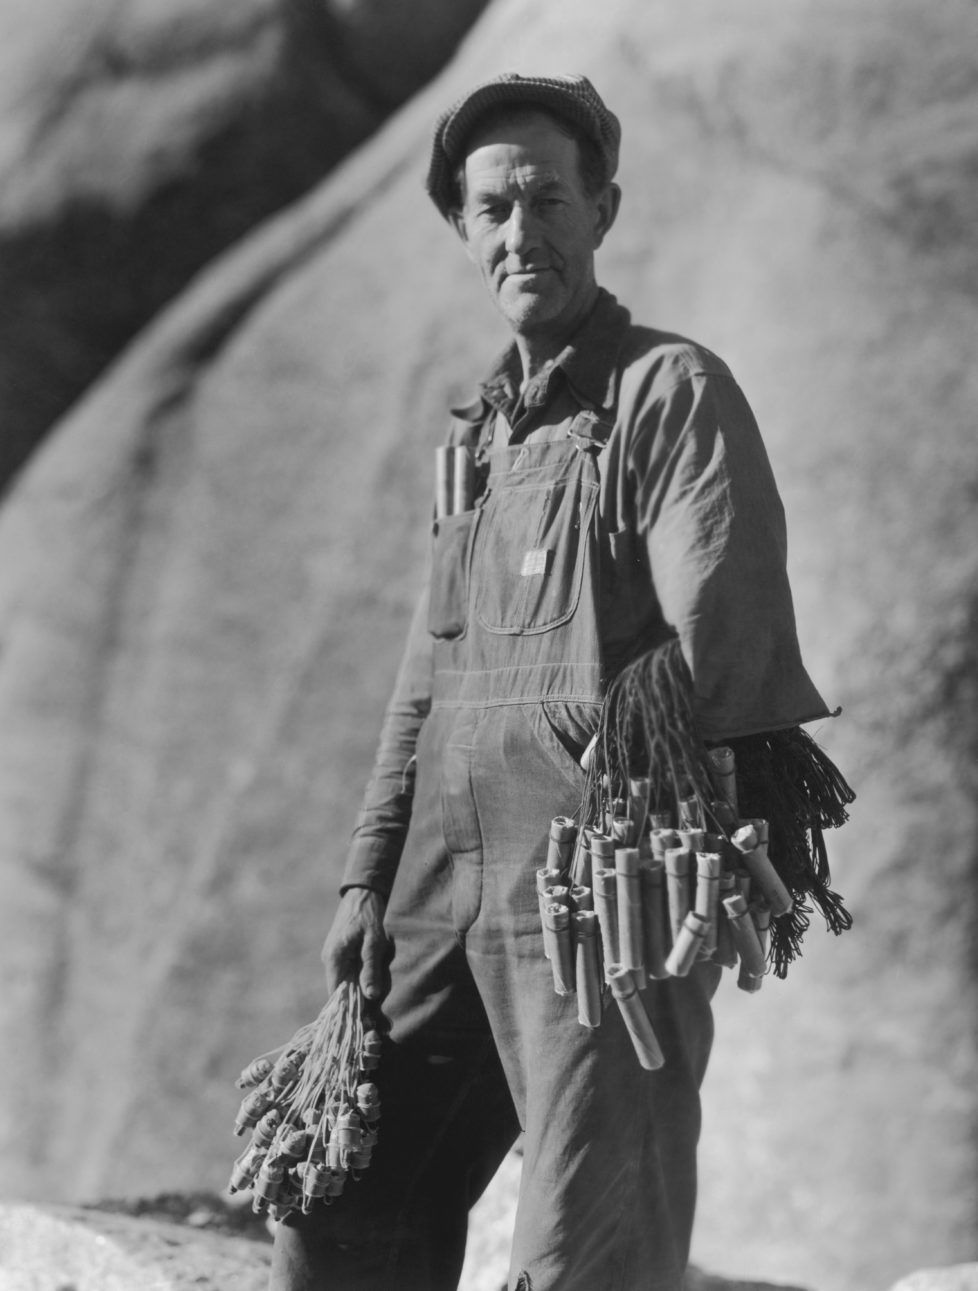 The 'powder monkey' of the Mount Rushmore National Memorial, a sculpture carved into the granite face of Mount Rushmore near Keystone, South Dakota, USA, circa 1930. The 'powder monkey' is holding dynamite and detonators. (Photo by Archive Photos/Getty Images)